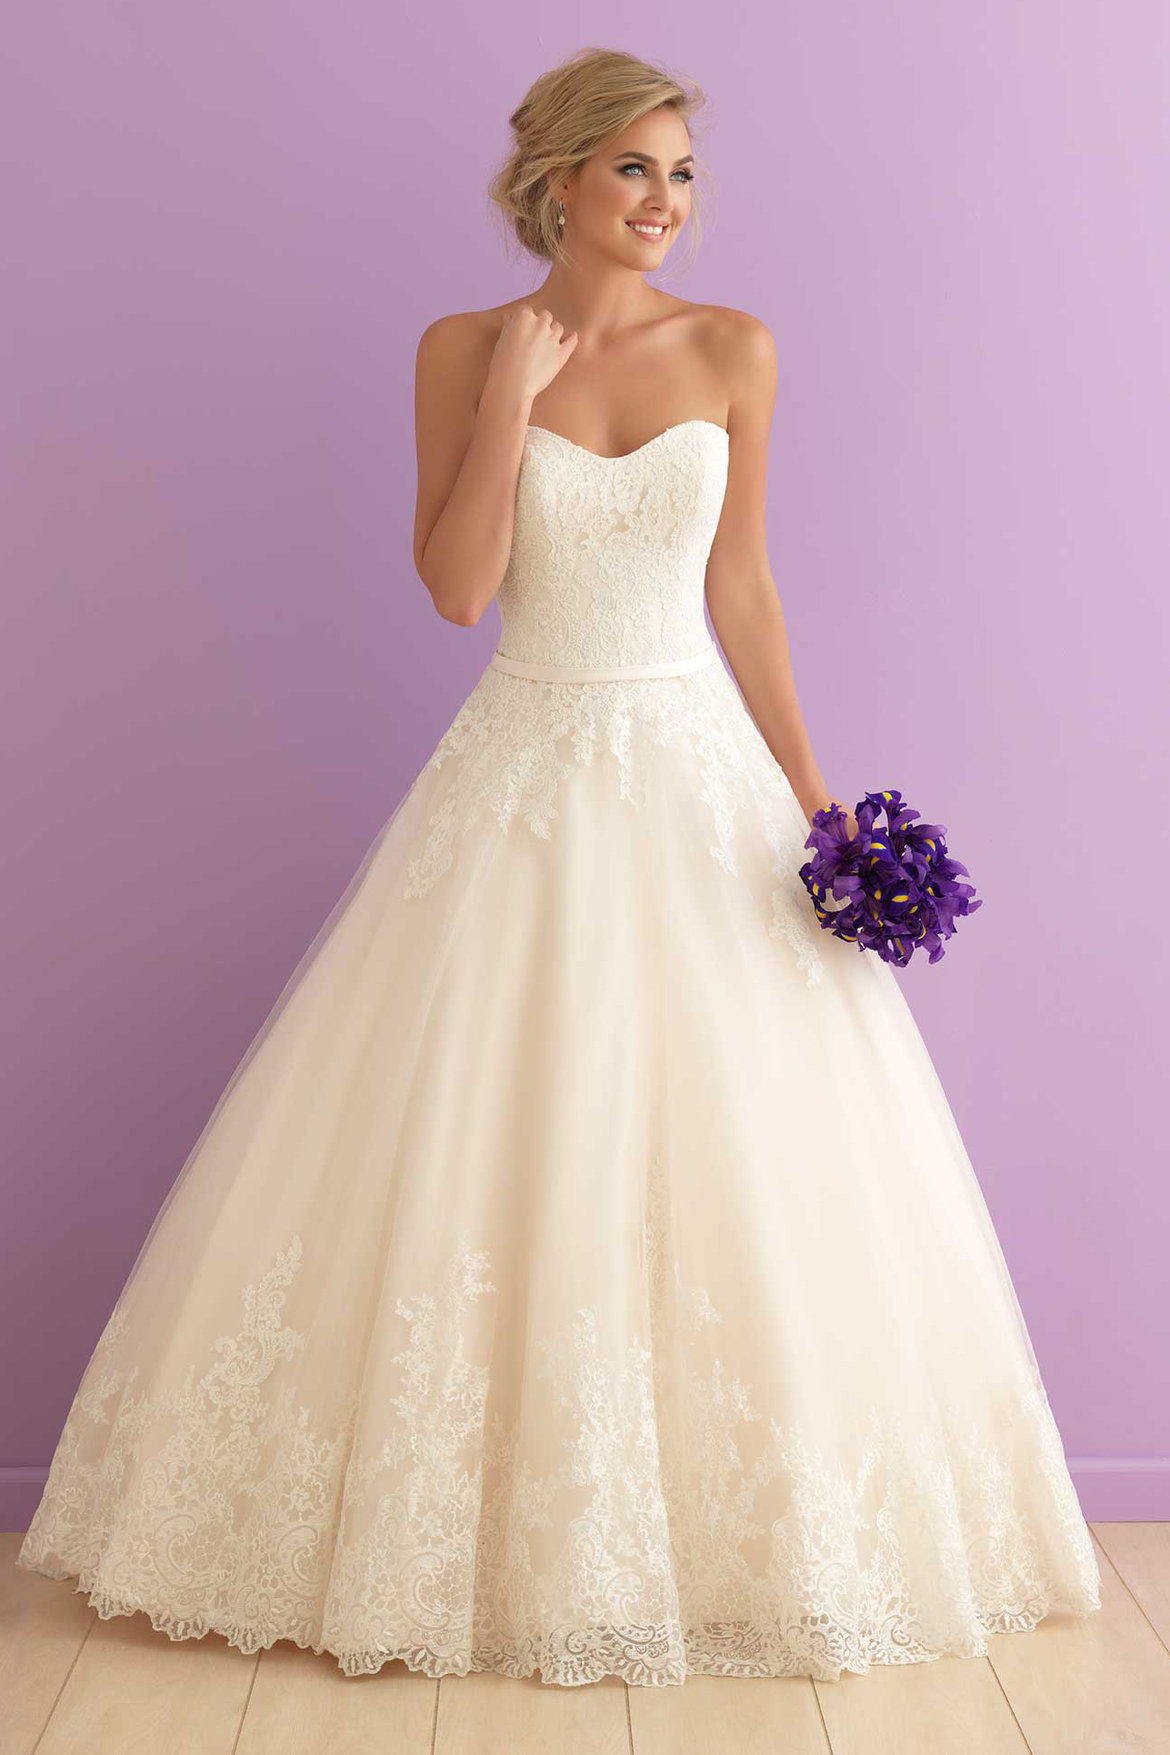 The 25 most popular wedding gowns of 2015 bridalguide for Romantic wedding dress designers